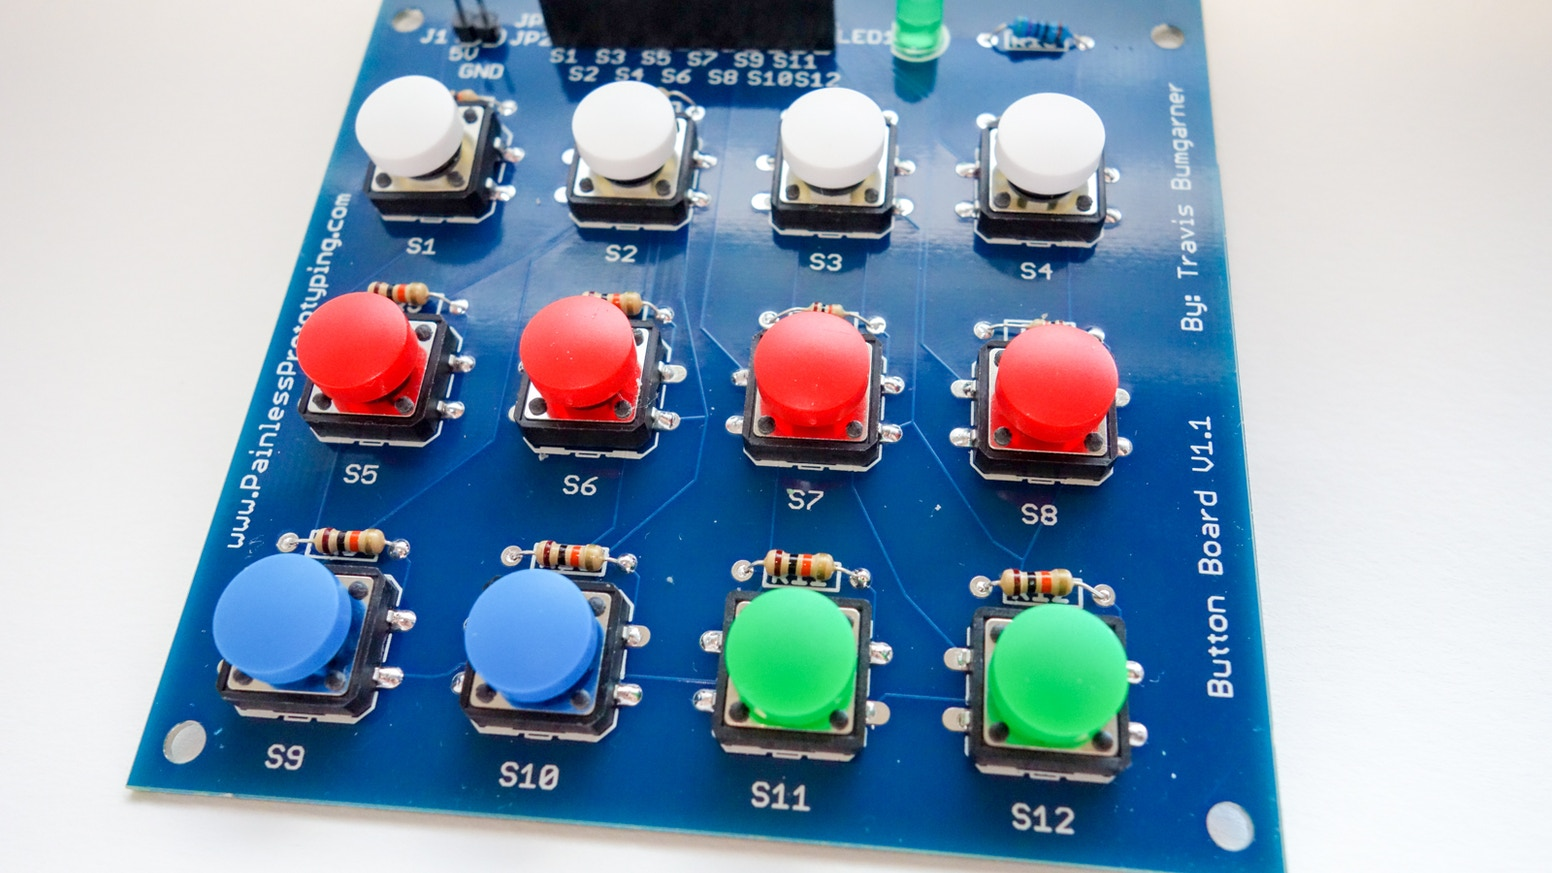 Button Board Prototyping Electronics The Painless Way By Travis Projects Makes Adding Push Buttons To A Breeze Eliminating Headaches And Useful Functionality